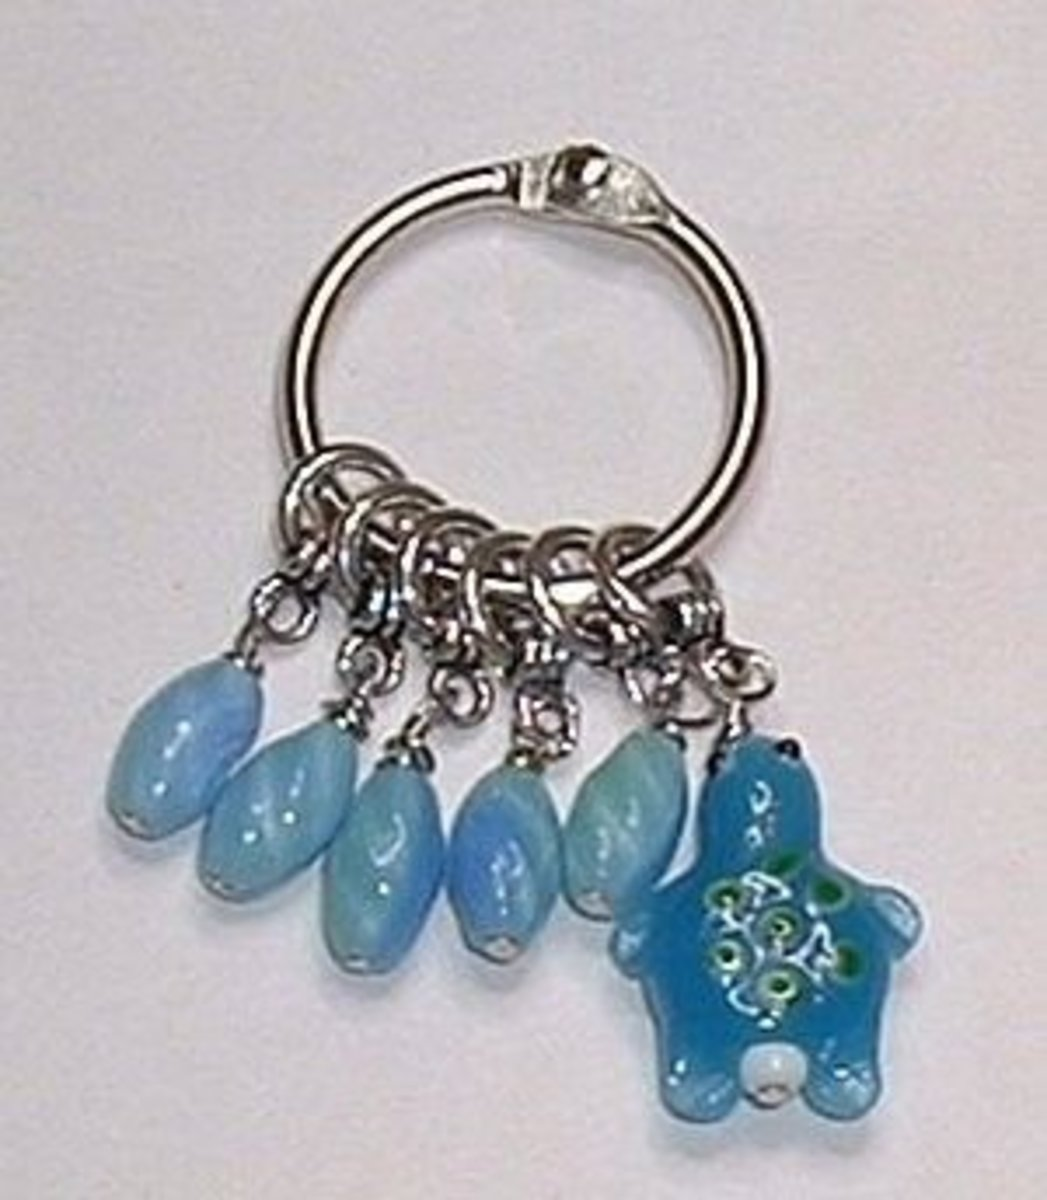 These stitch markers use the round portion of toggle clasps instead of split rings.